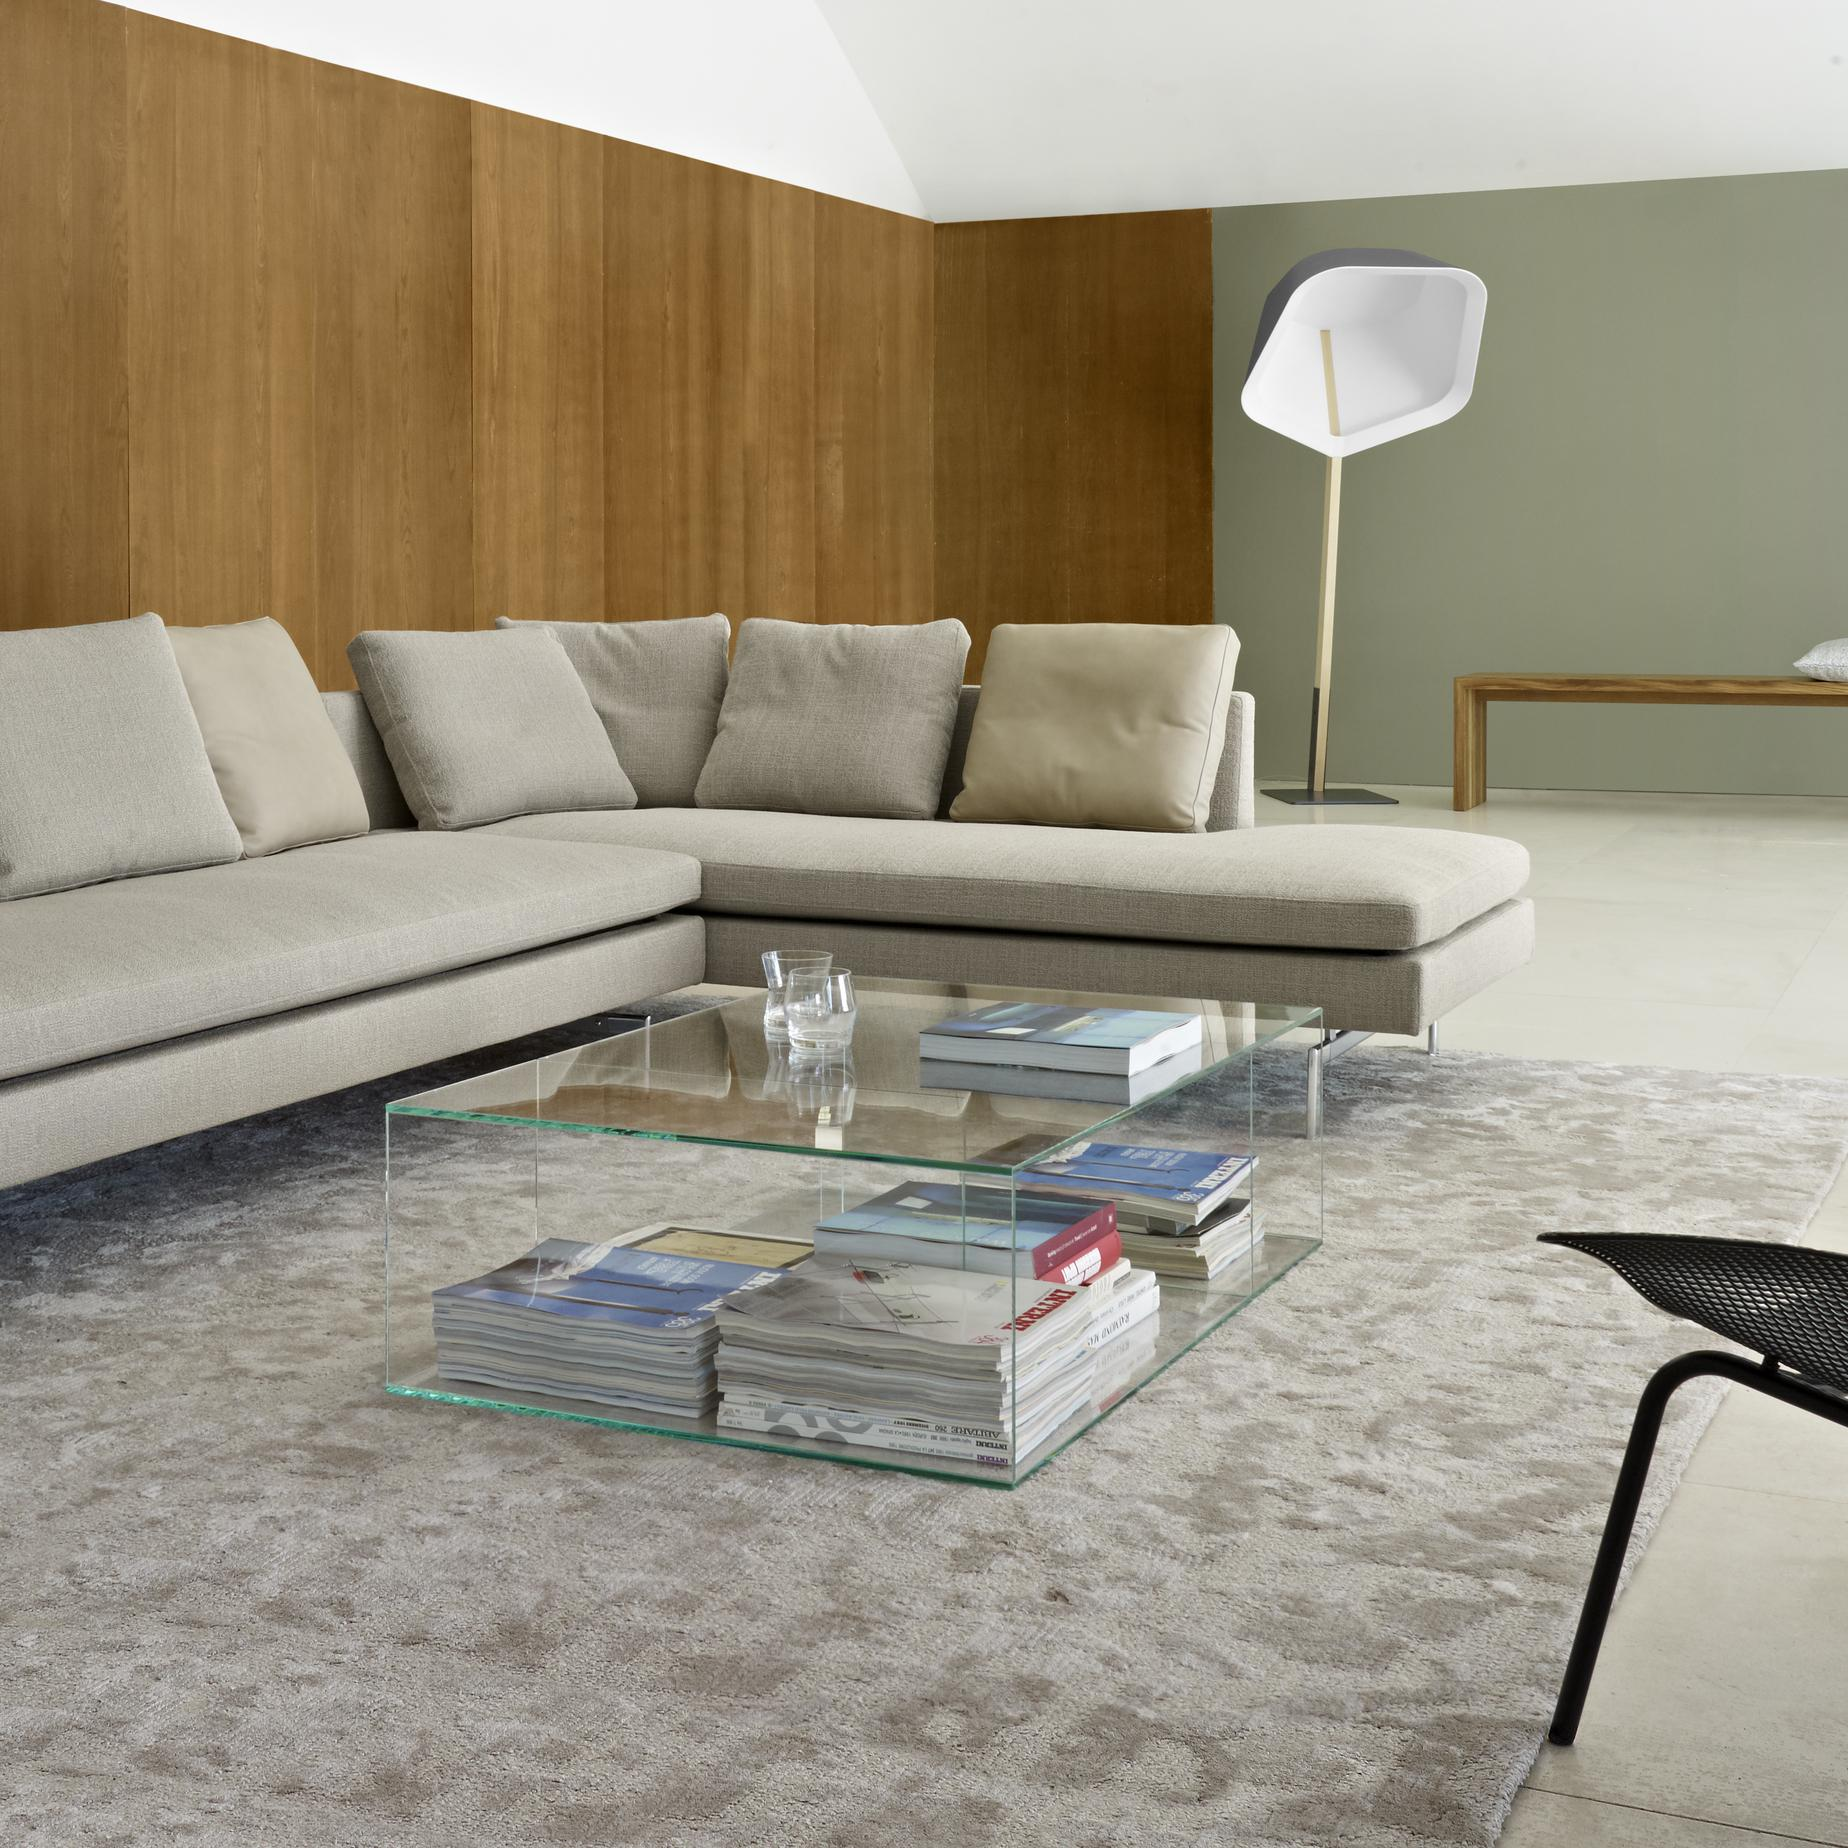 SALDO Occasional Tables from Designer Nick Rennie Ligne Roset